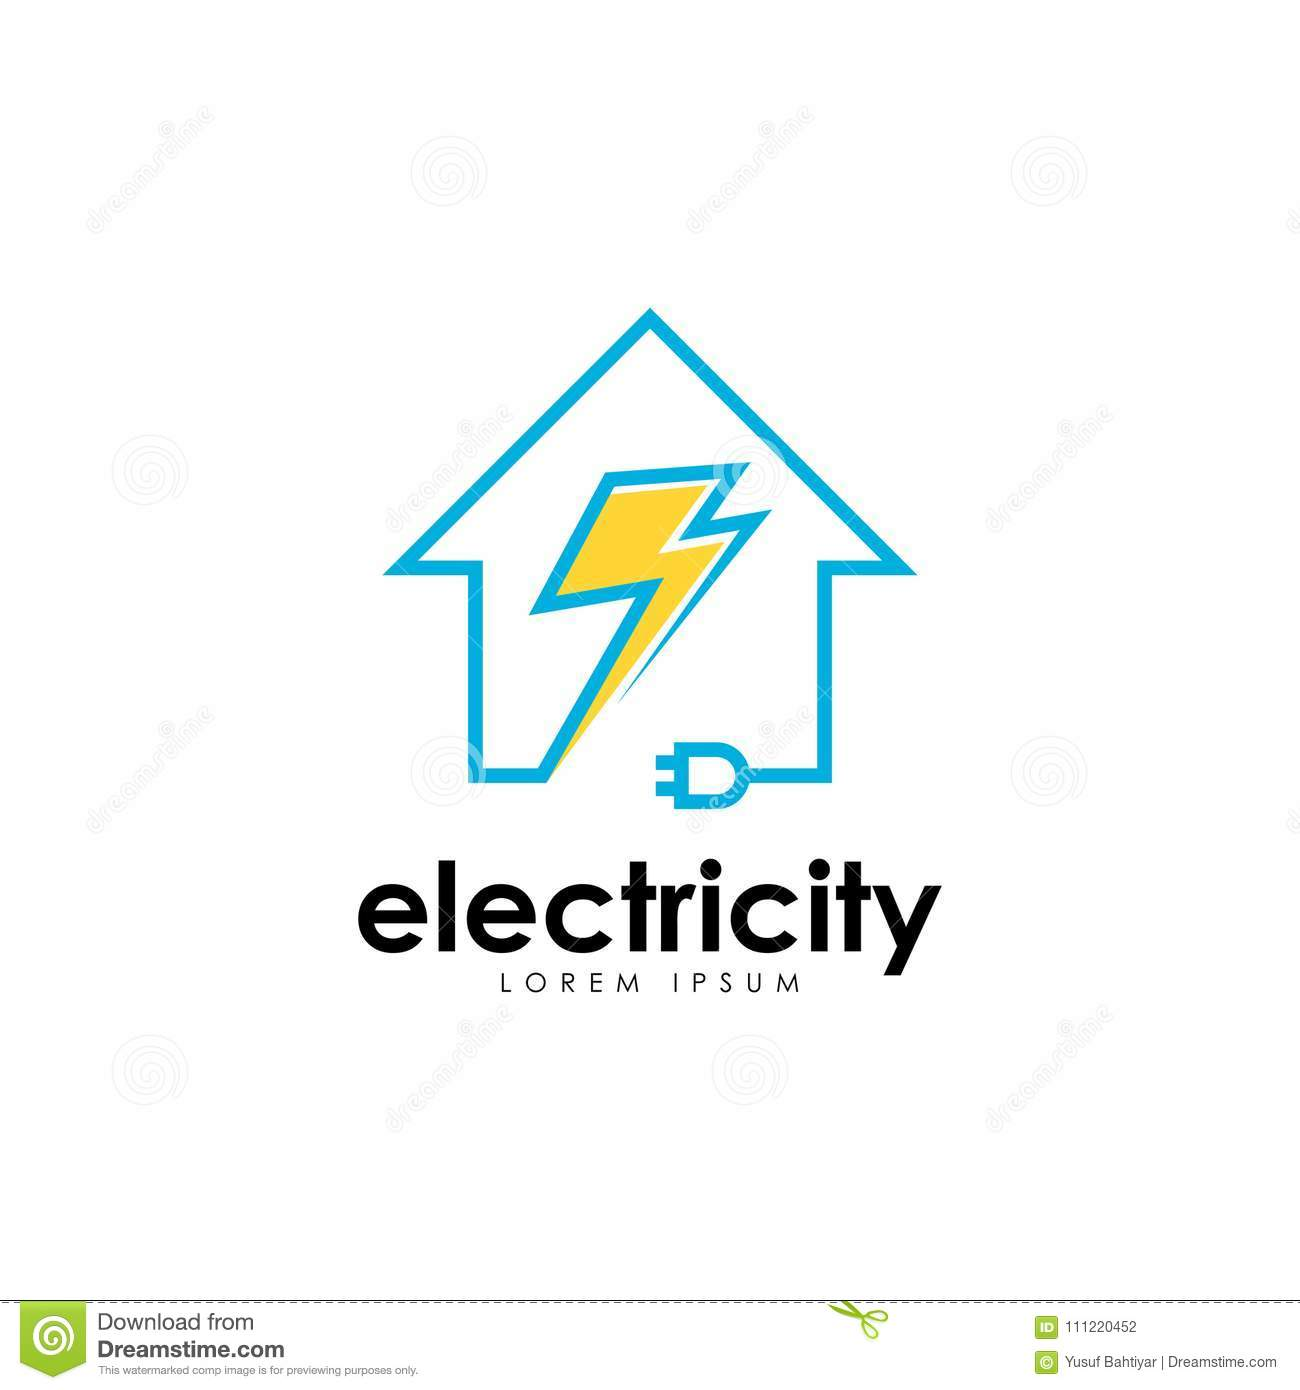 Electricity logo vector art logo template for your business stock download comp wajeb Gallery